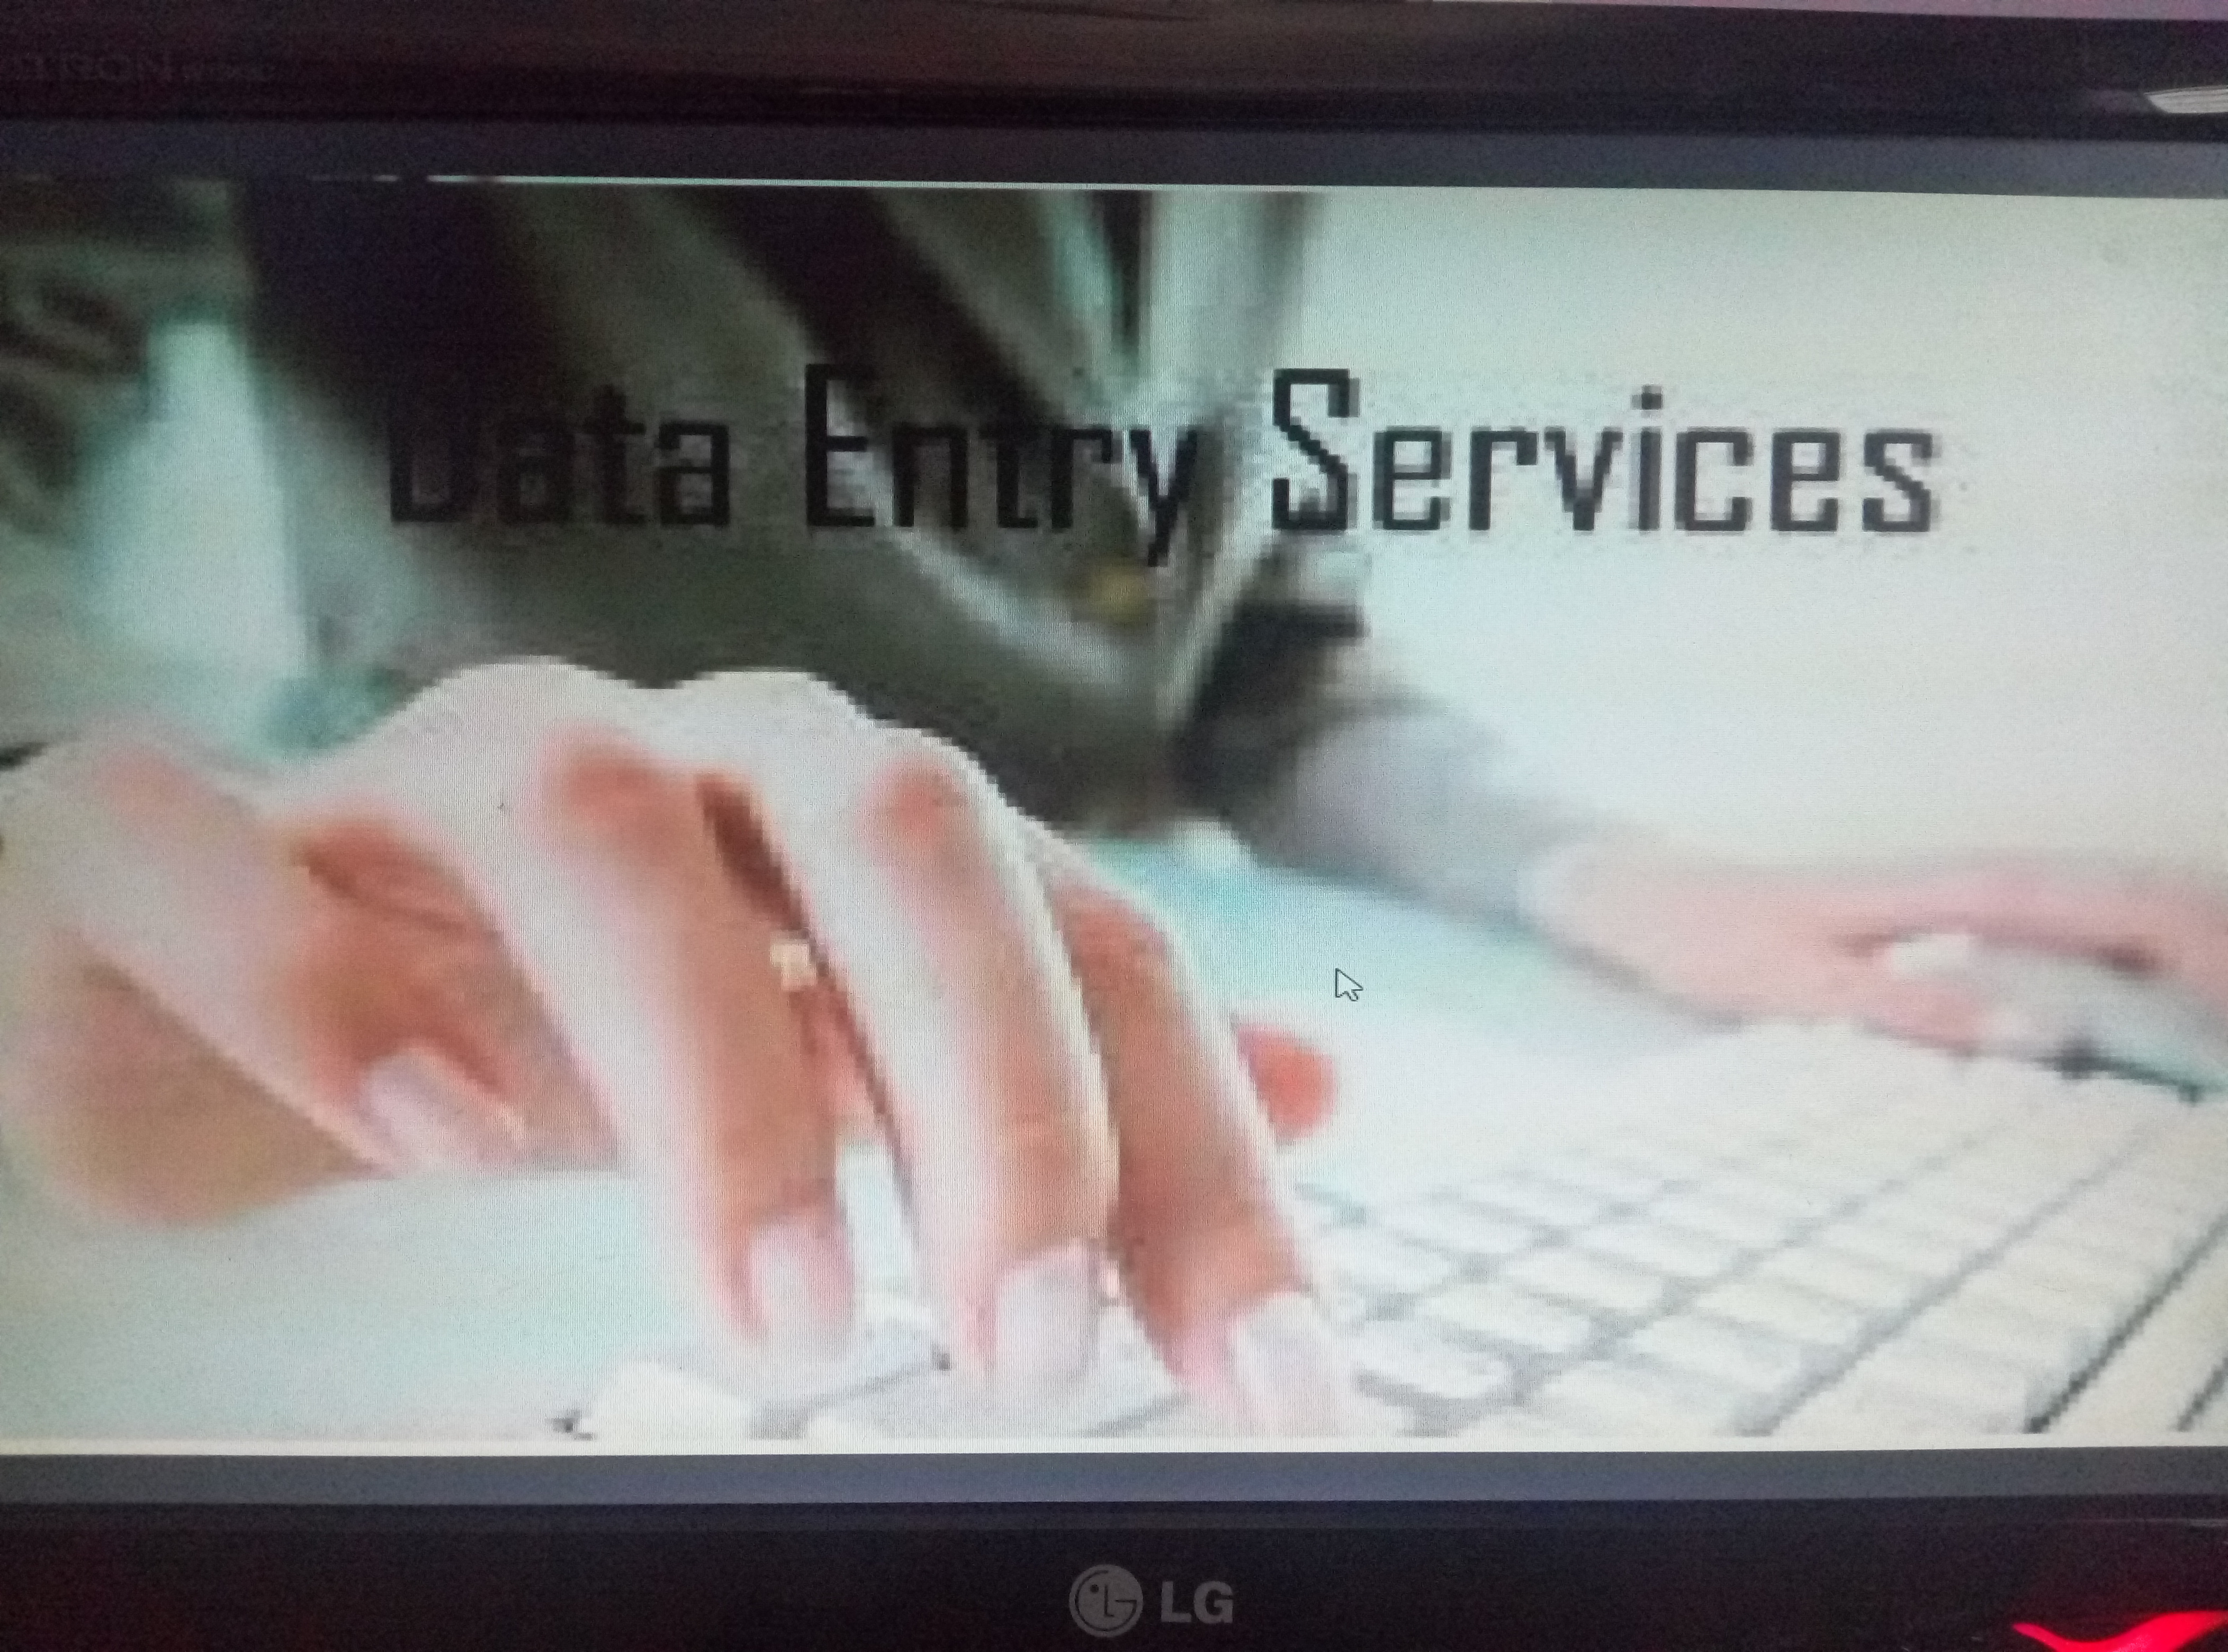 do data entry accurately at lower price